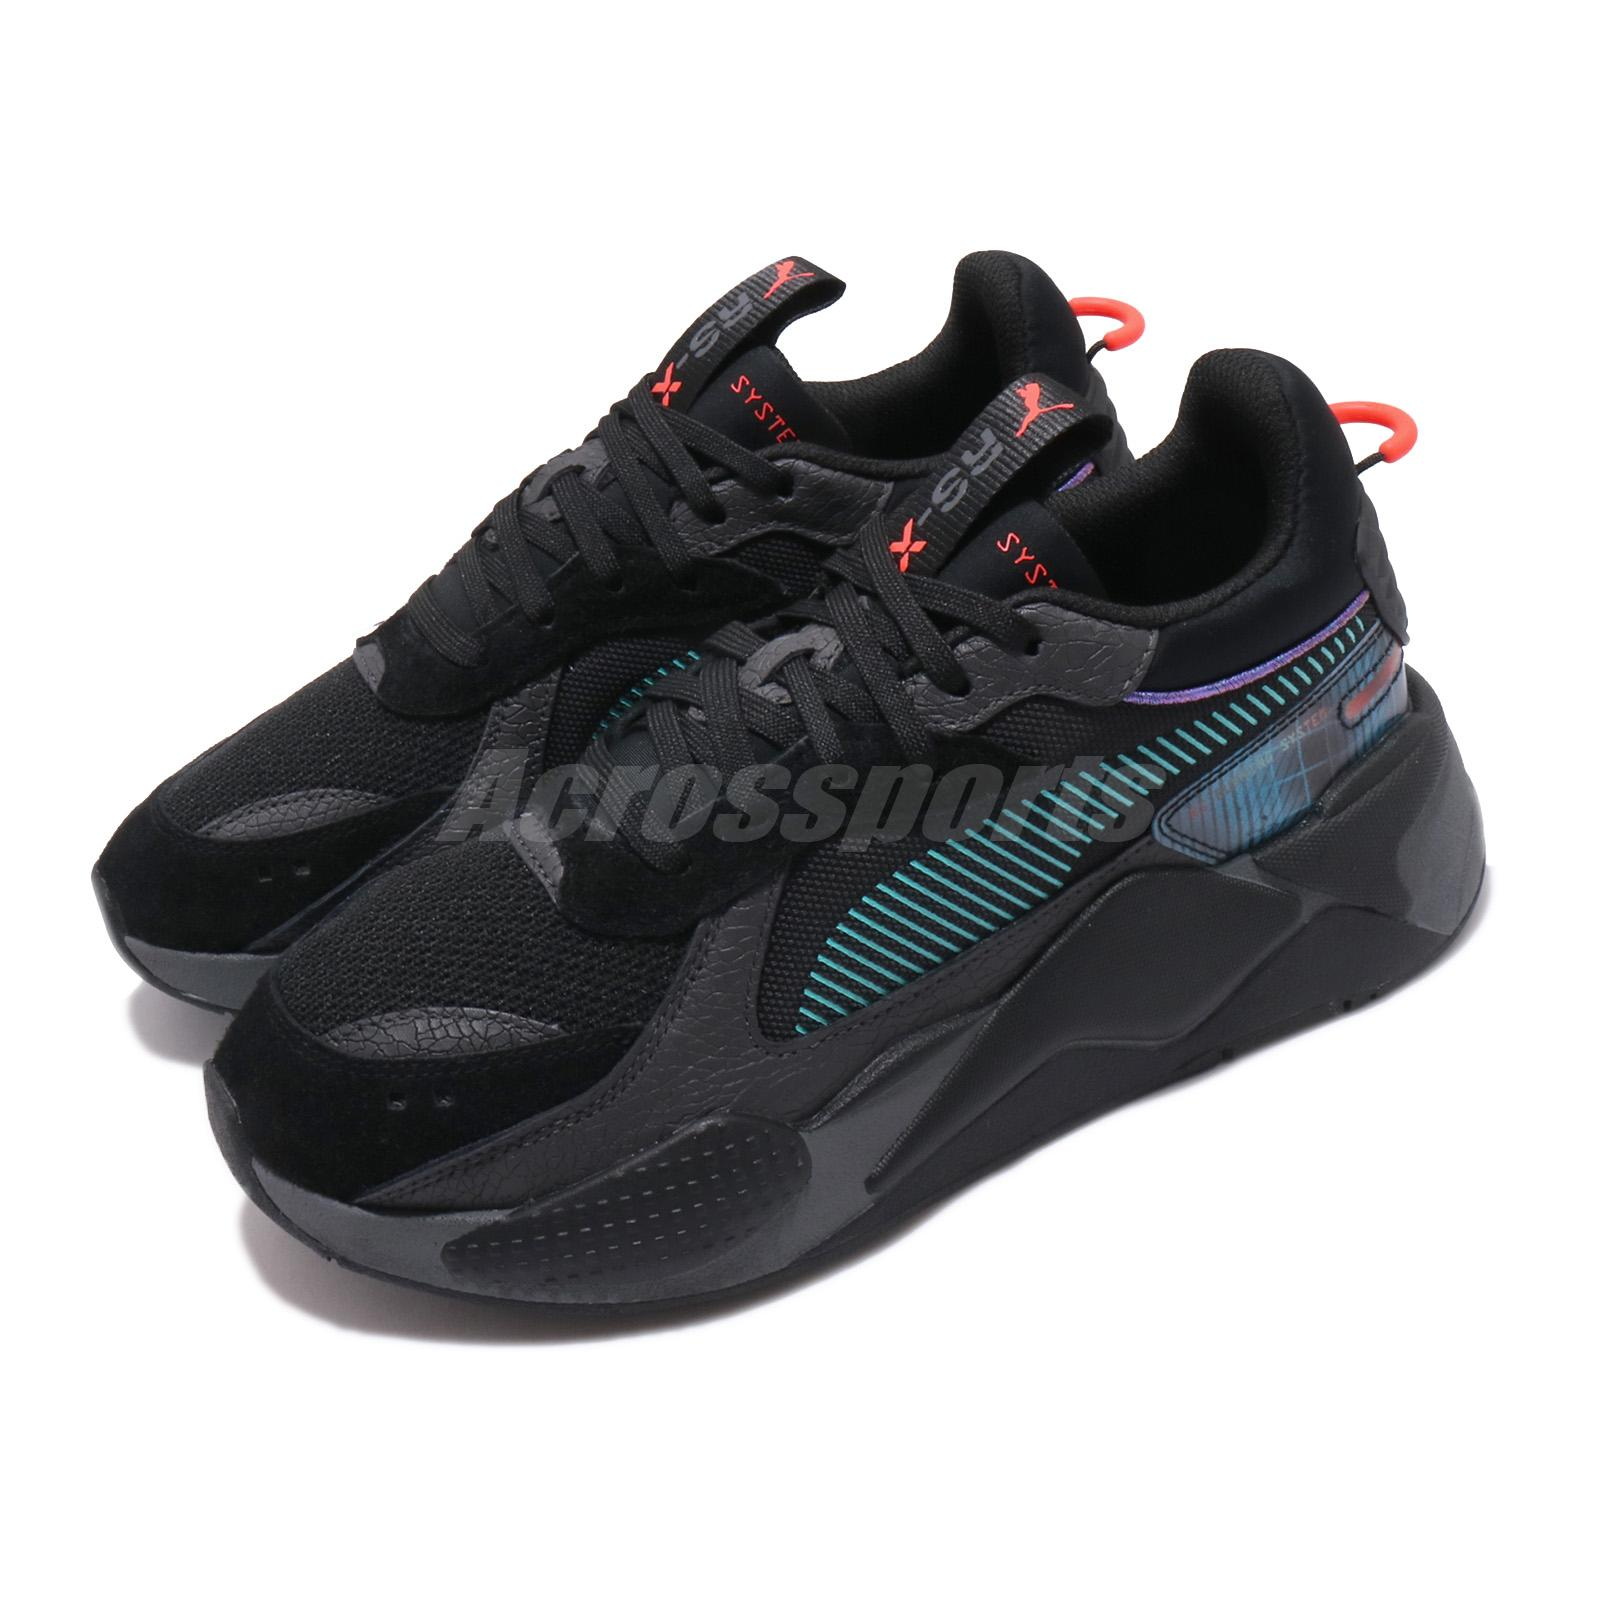 Details about Puma RS-X BladeRunner Running System Black Asphalt Men  Lifestyle Shoes 369967-01